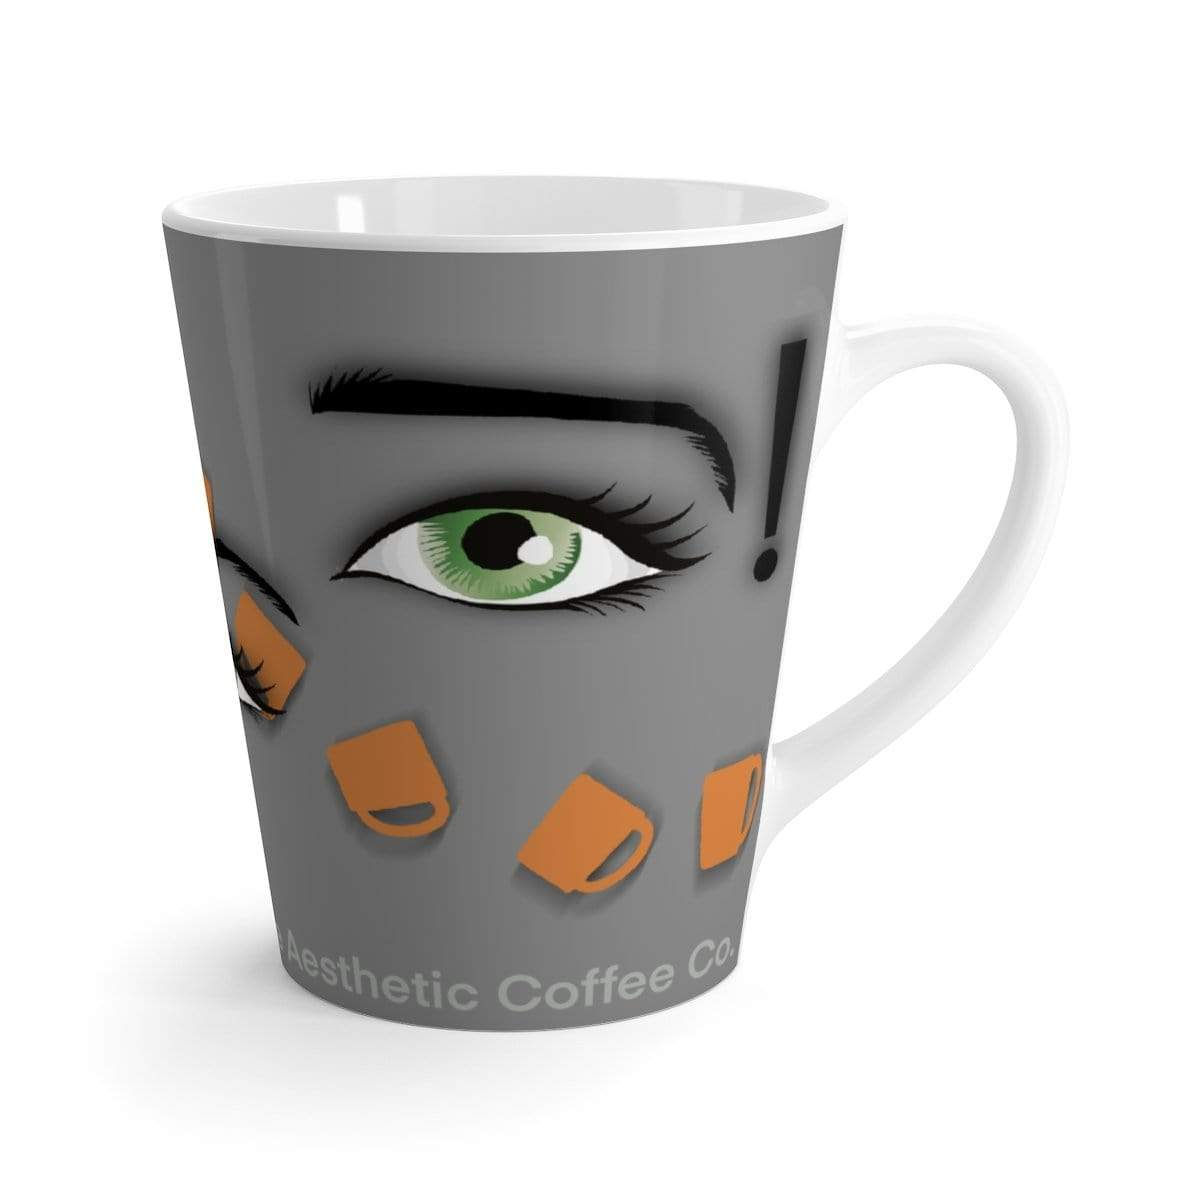 Coffee Aesthetic Com Coffee Awake Latte Mug Plumskum